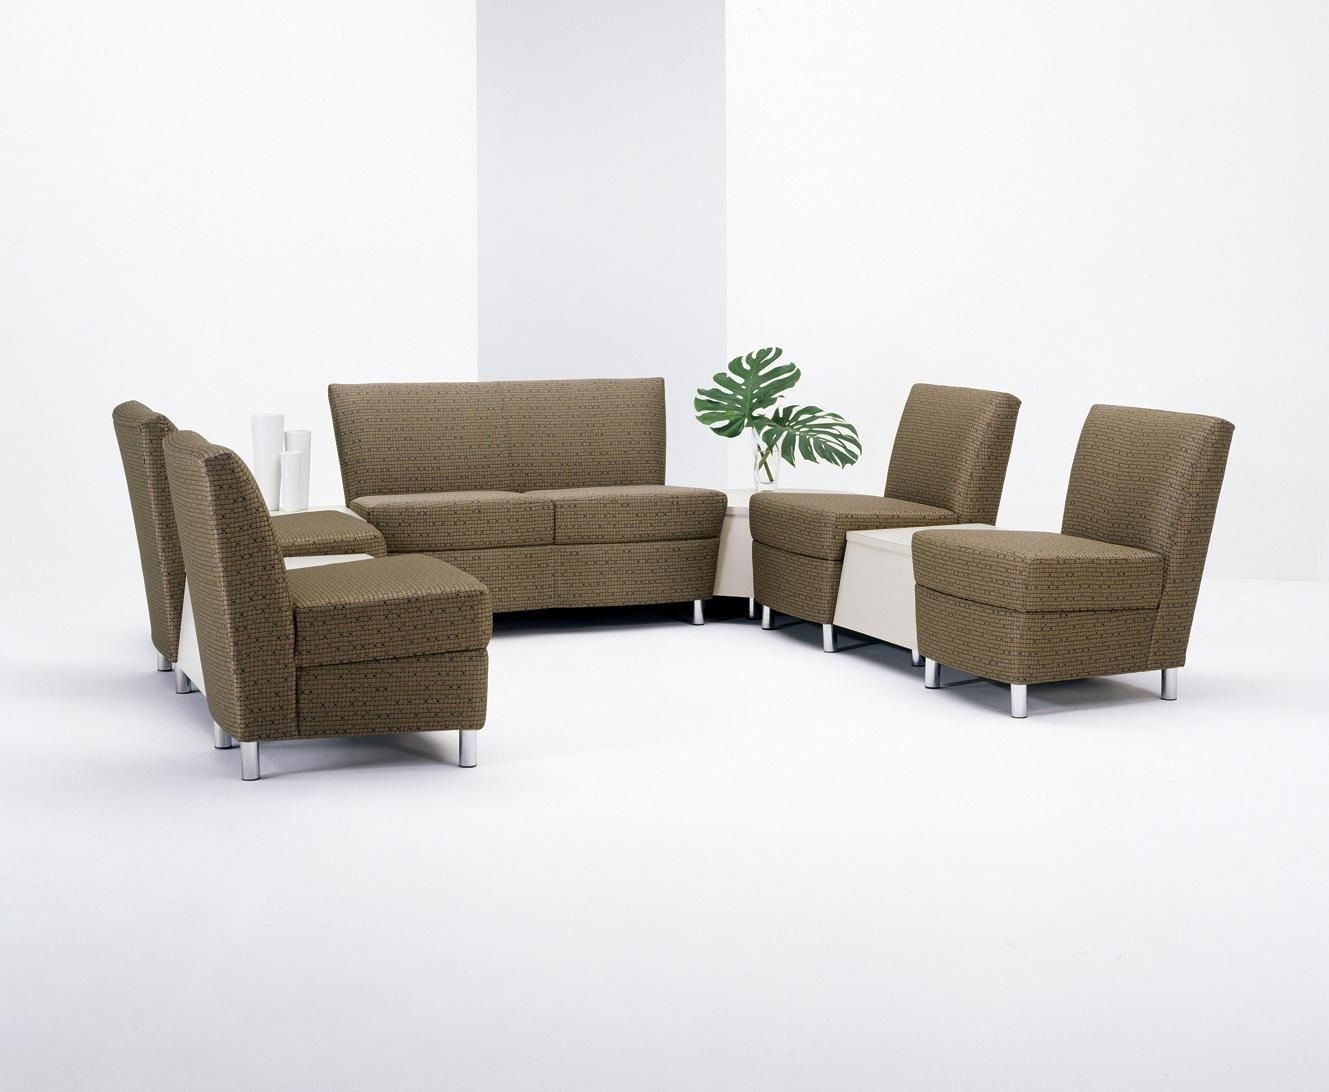 Waiting Chairs Chaise Lounge Chair With Storage Room Sofas Hpfi 7403 Modern 3 Seat